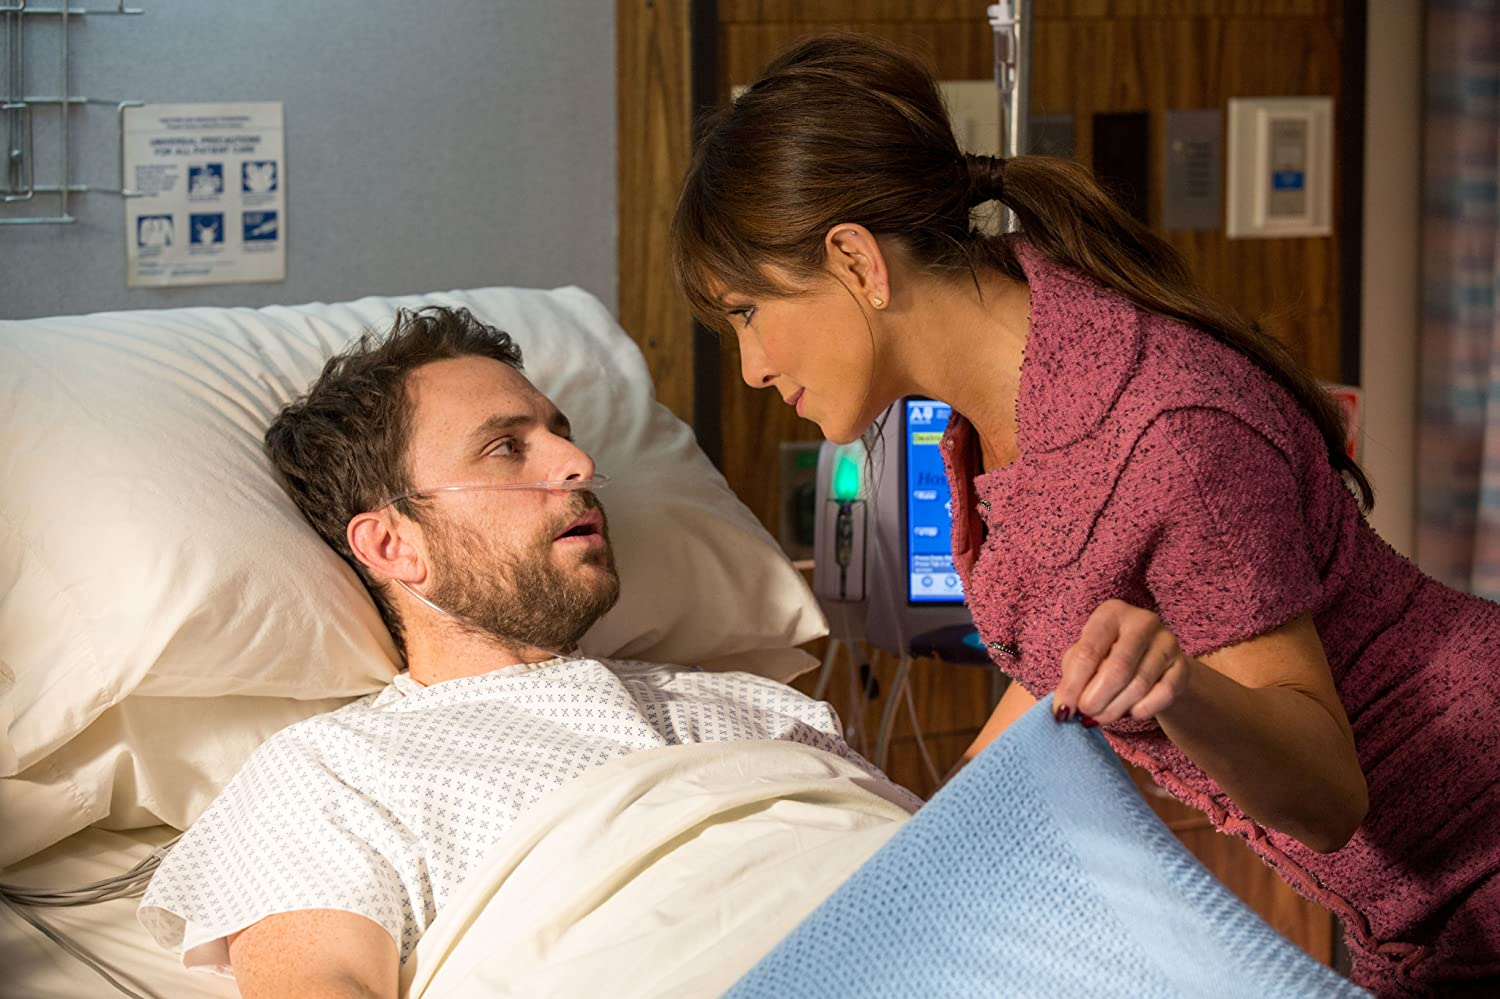 Jennifer Aniston and Charlie Day in Horrible Bosses 2 (2014)